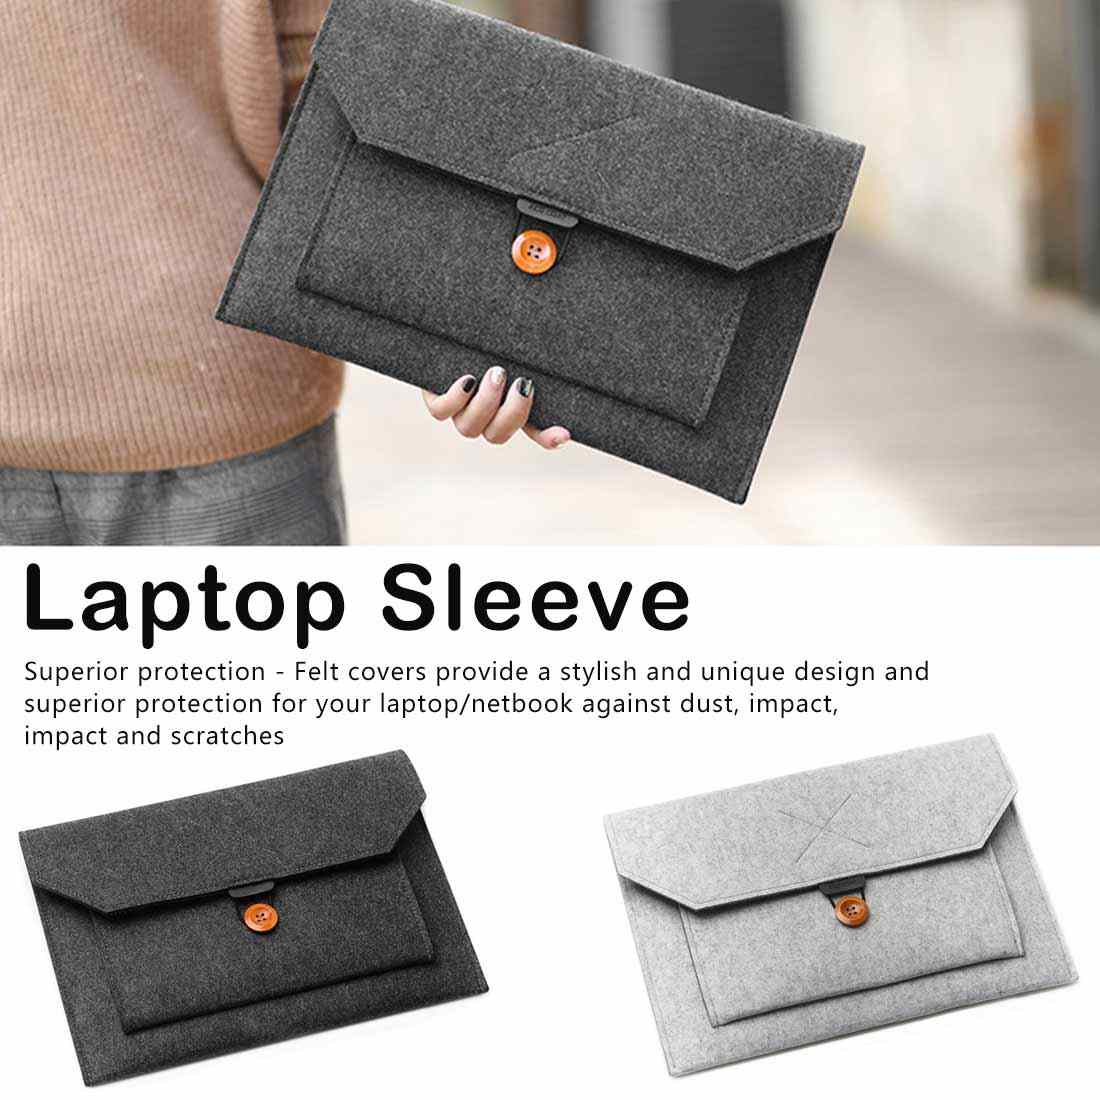 Fashion Wol Merasa Handbag Case Laptop Sleeve Tas Laptop untuk Macbook Air Pro 12 13.3 14 Lenovo Asus Laptop HP tas Kapal